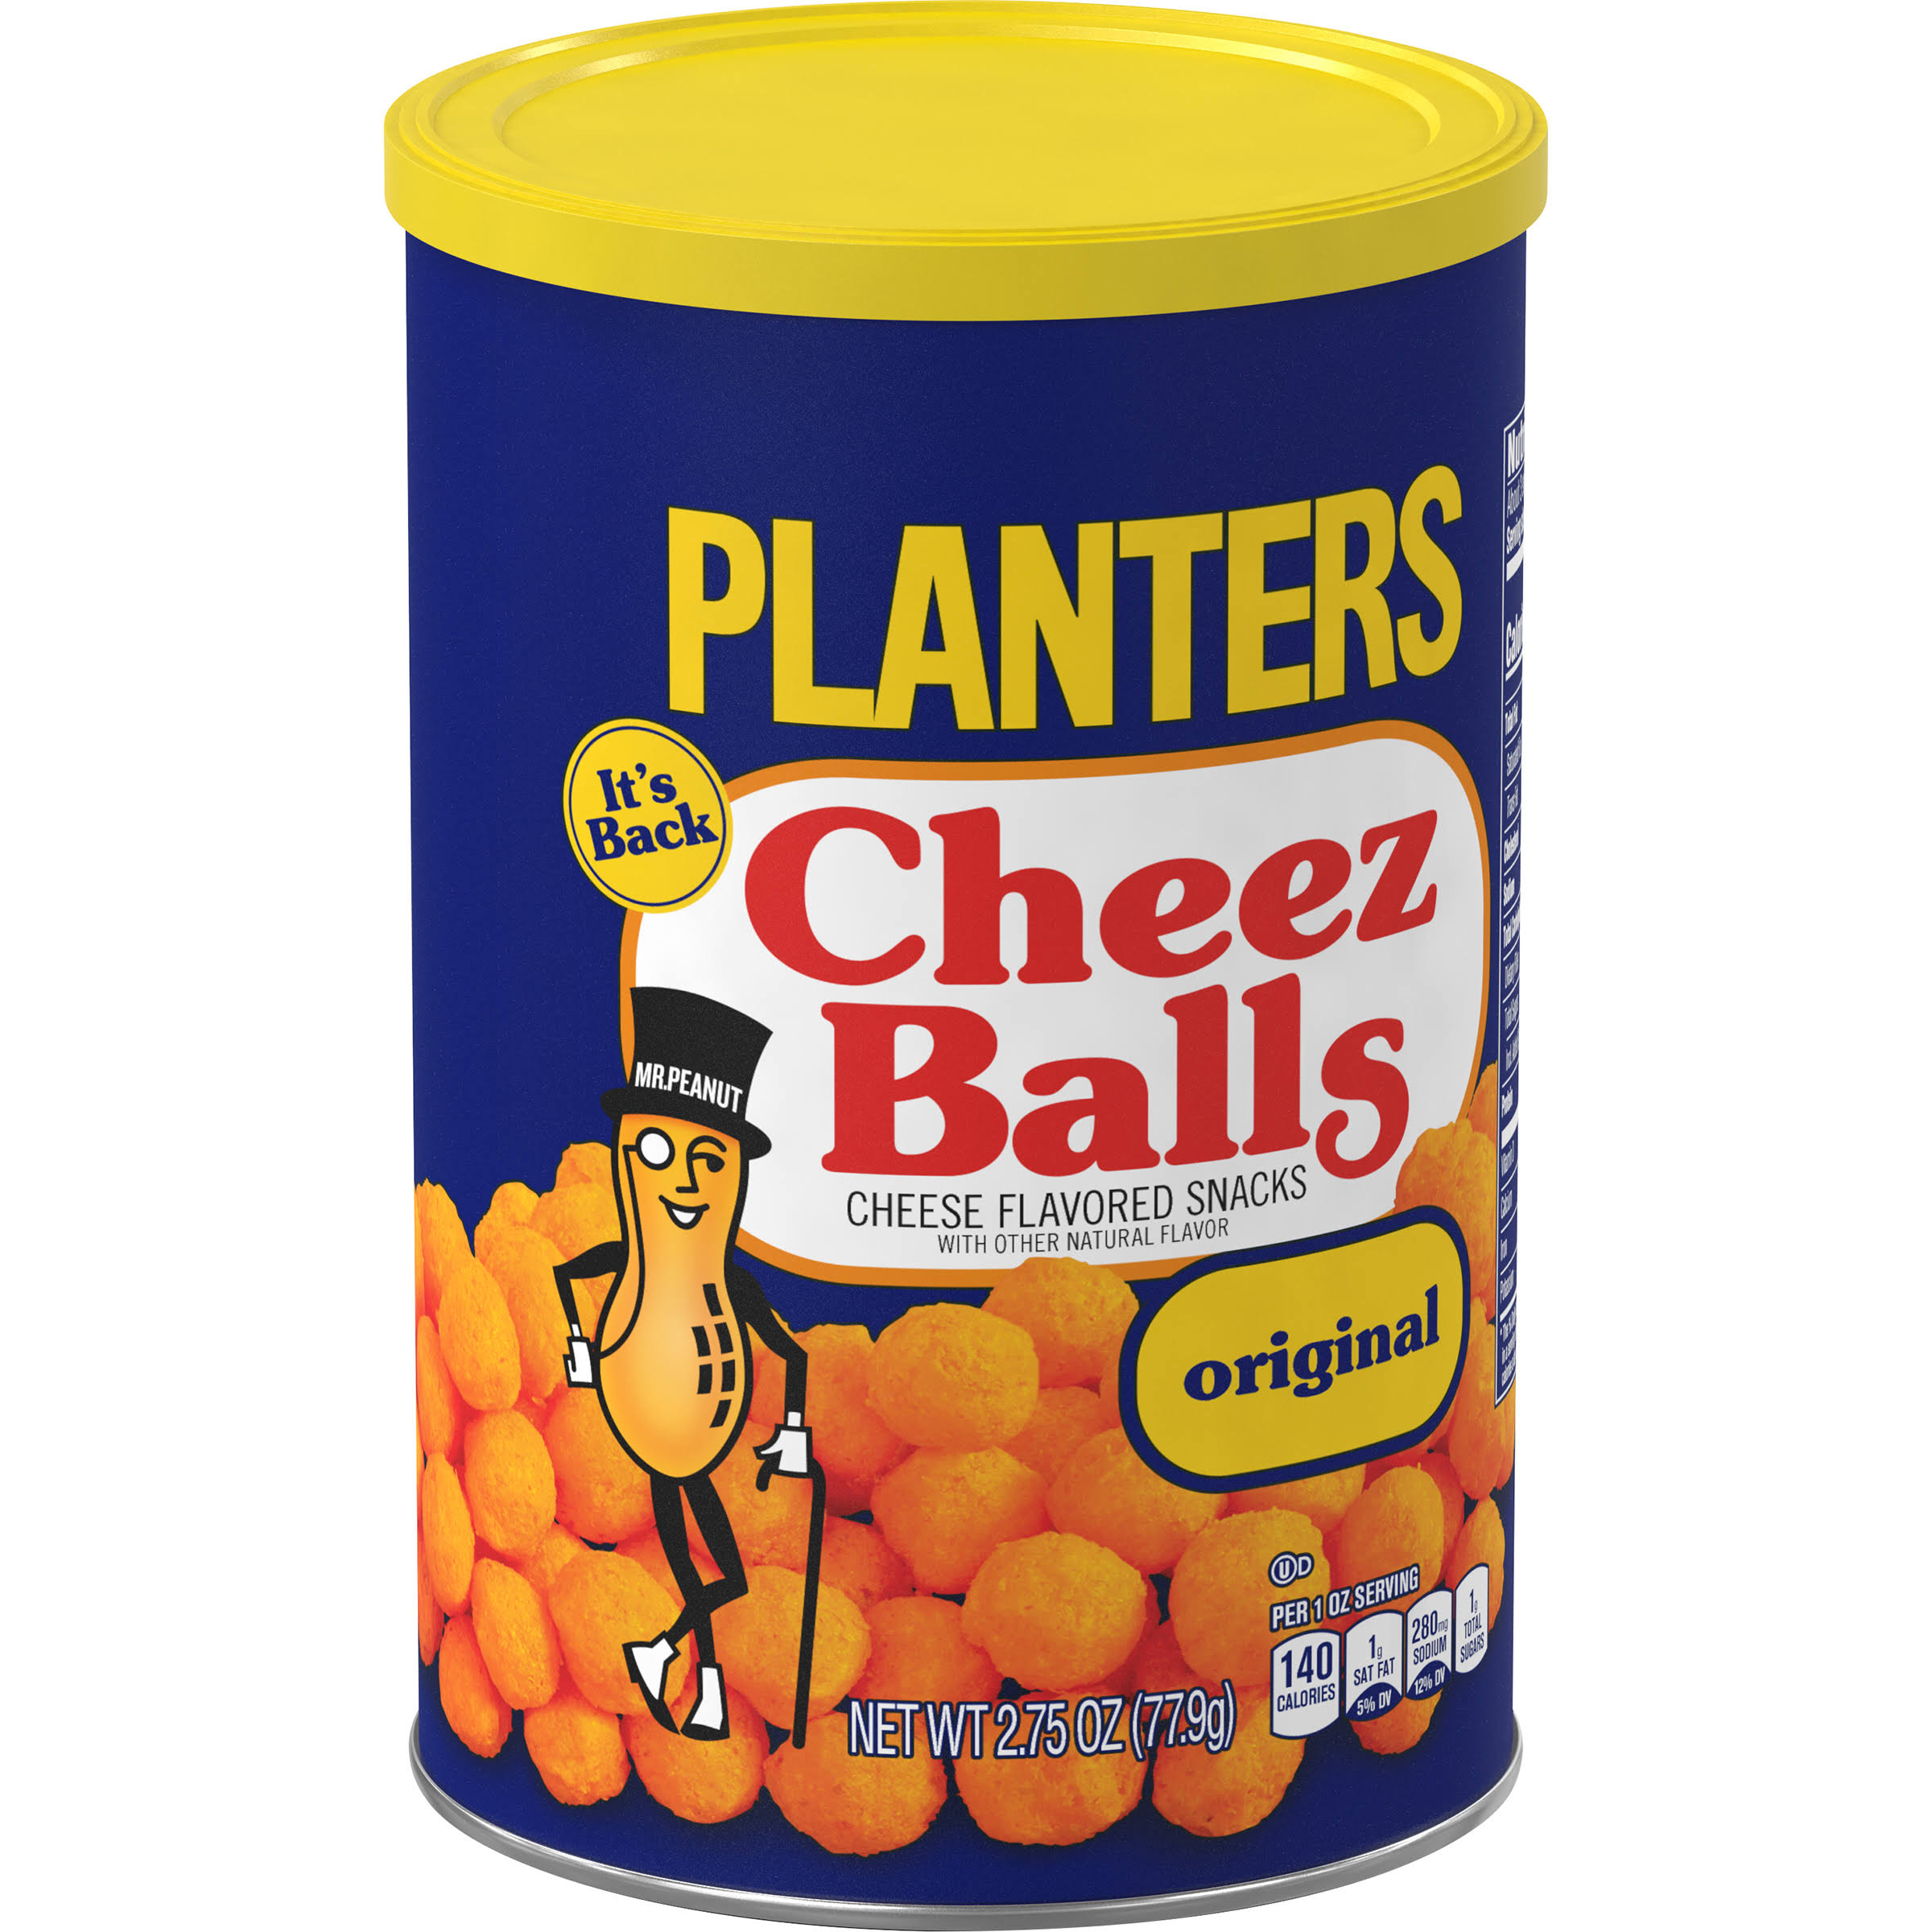 Planters Cheez Balls Cheese Flavored Snacks - 2.75oz